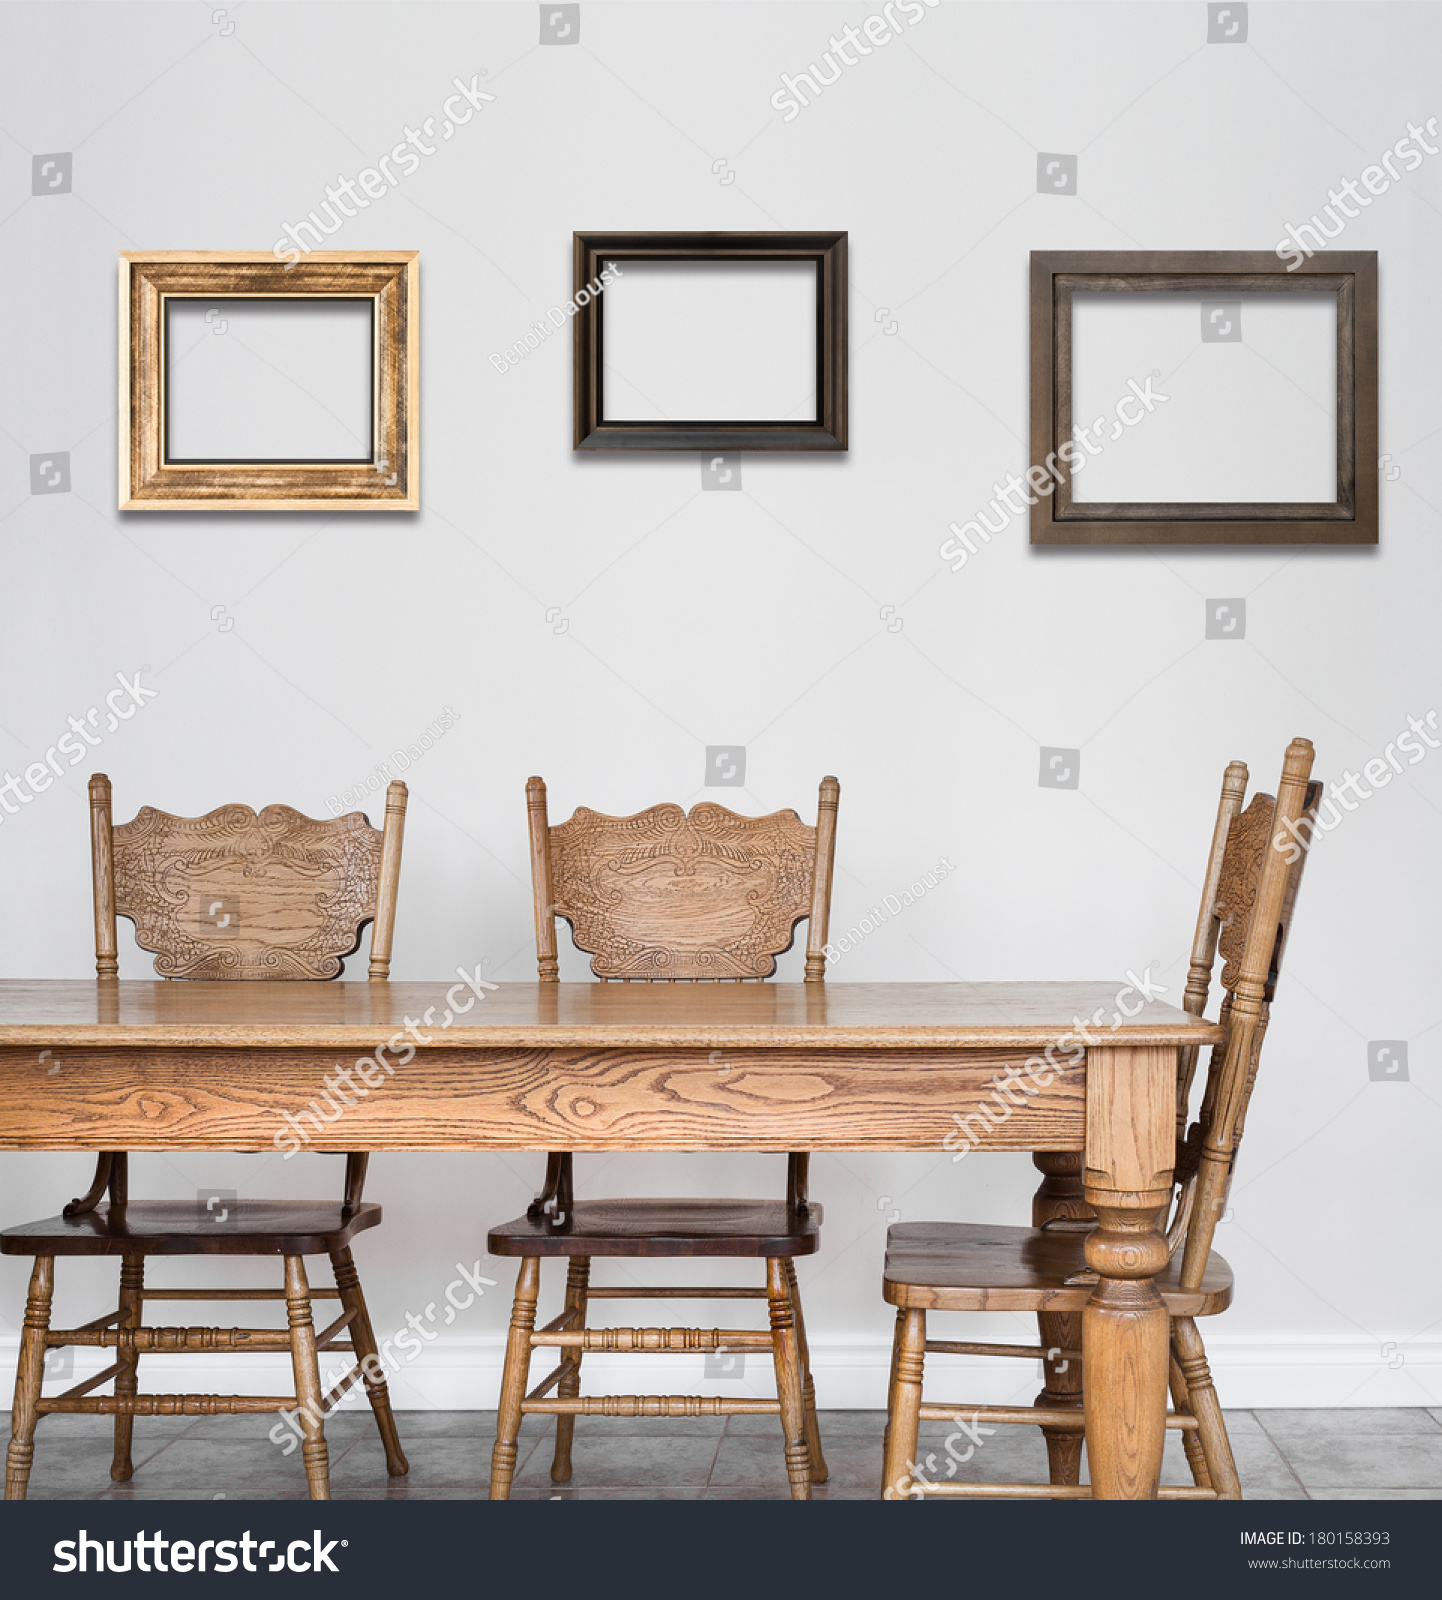 Wooden dining room table chair details stock photo